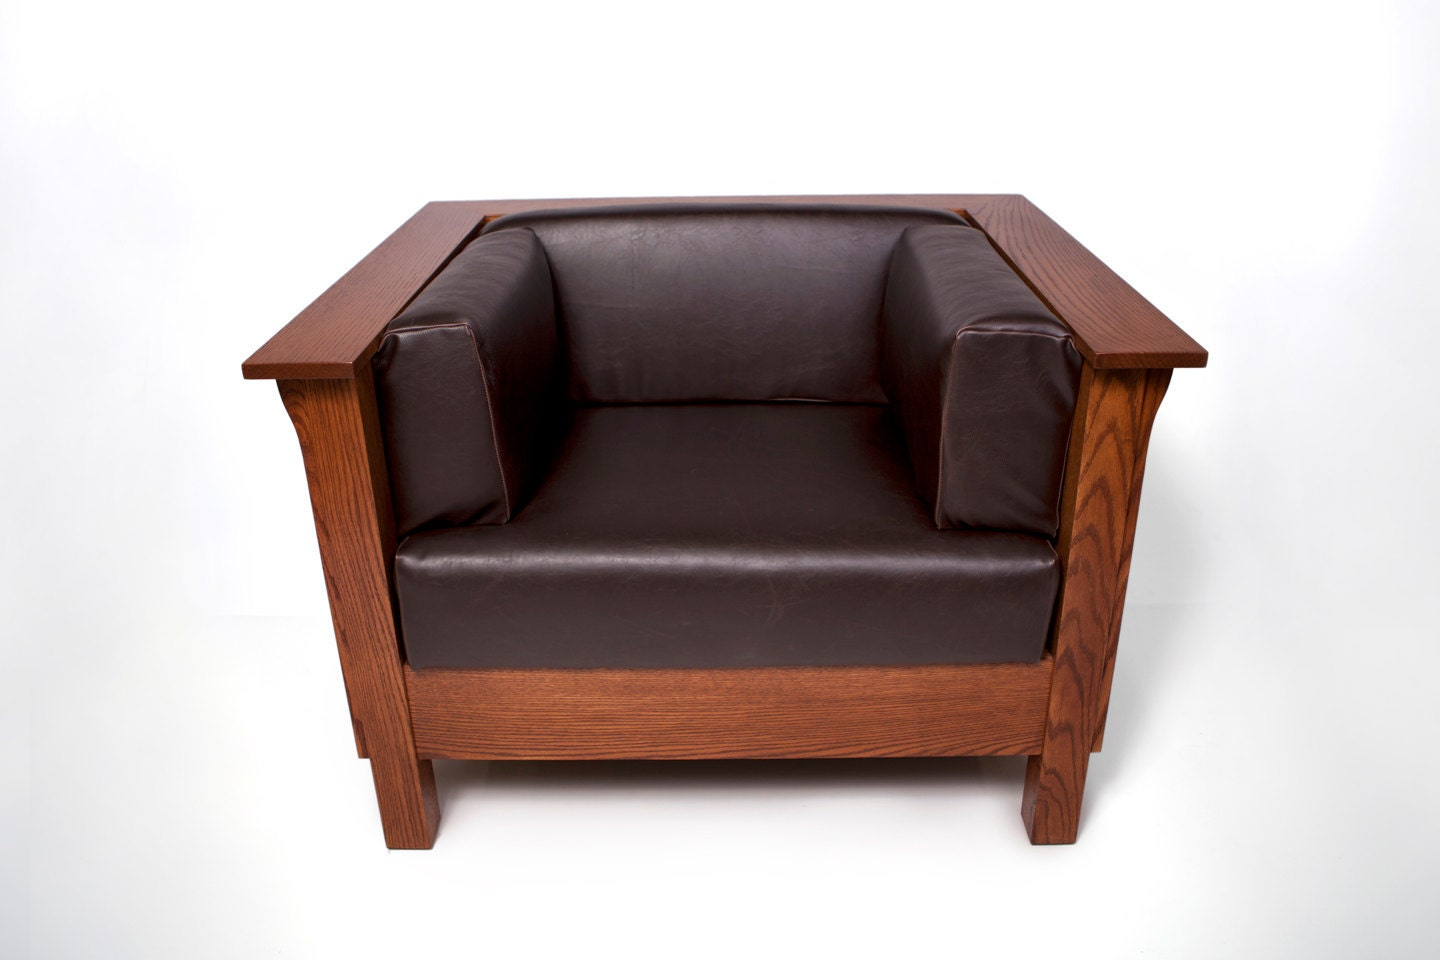 Mission arts crafts stickley style cube chair leather new for New style chair